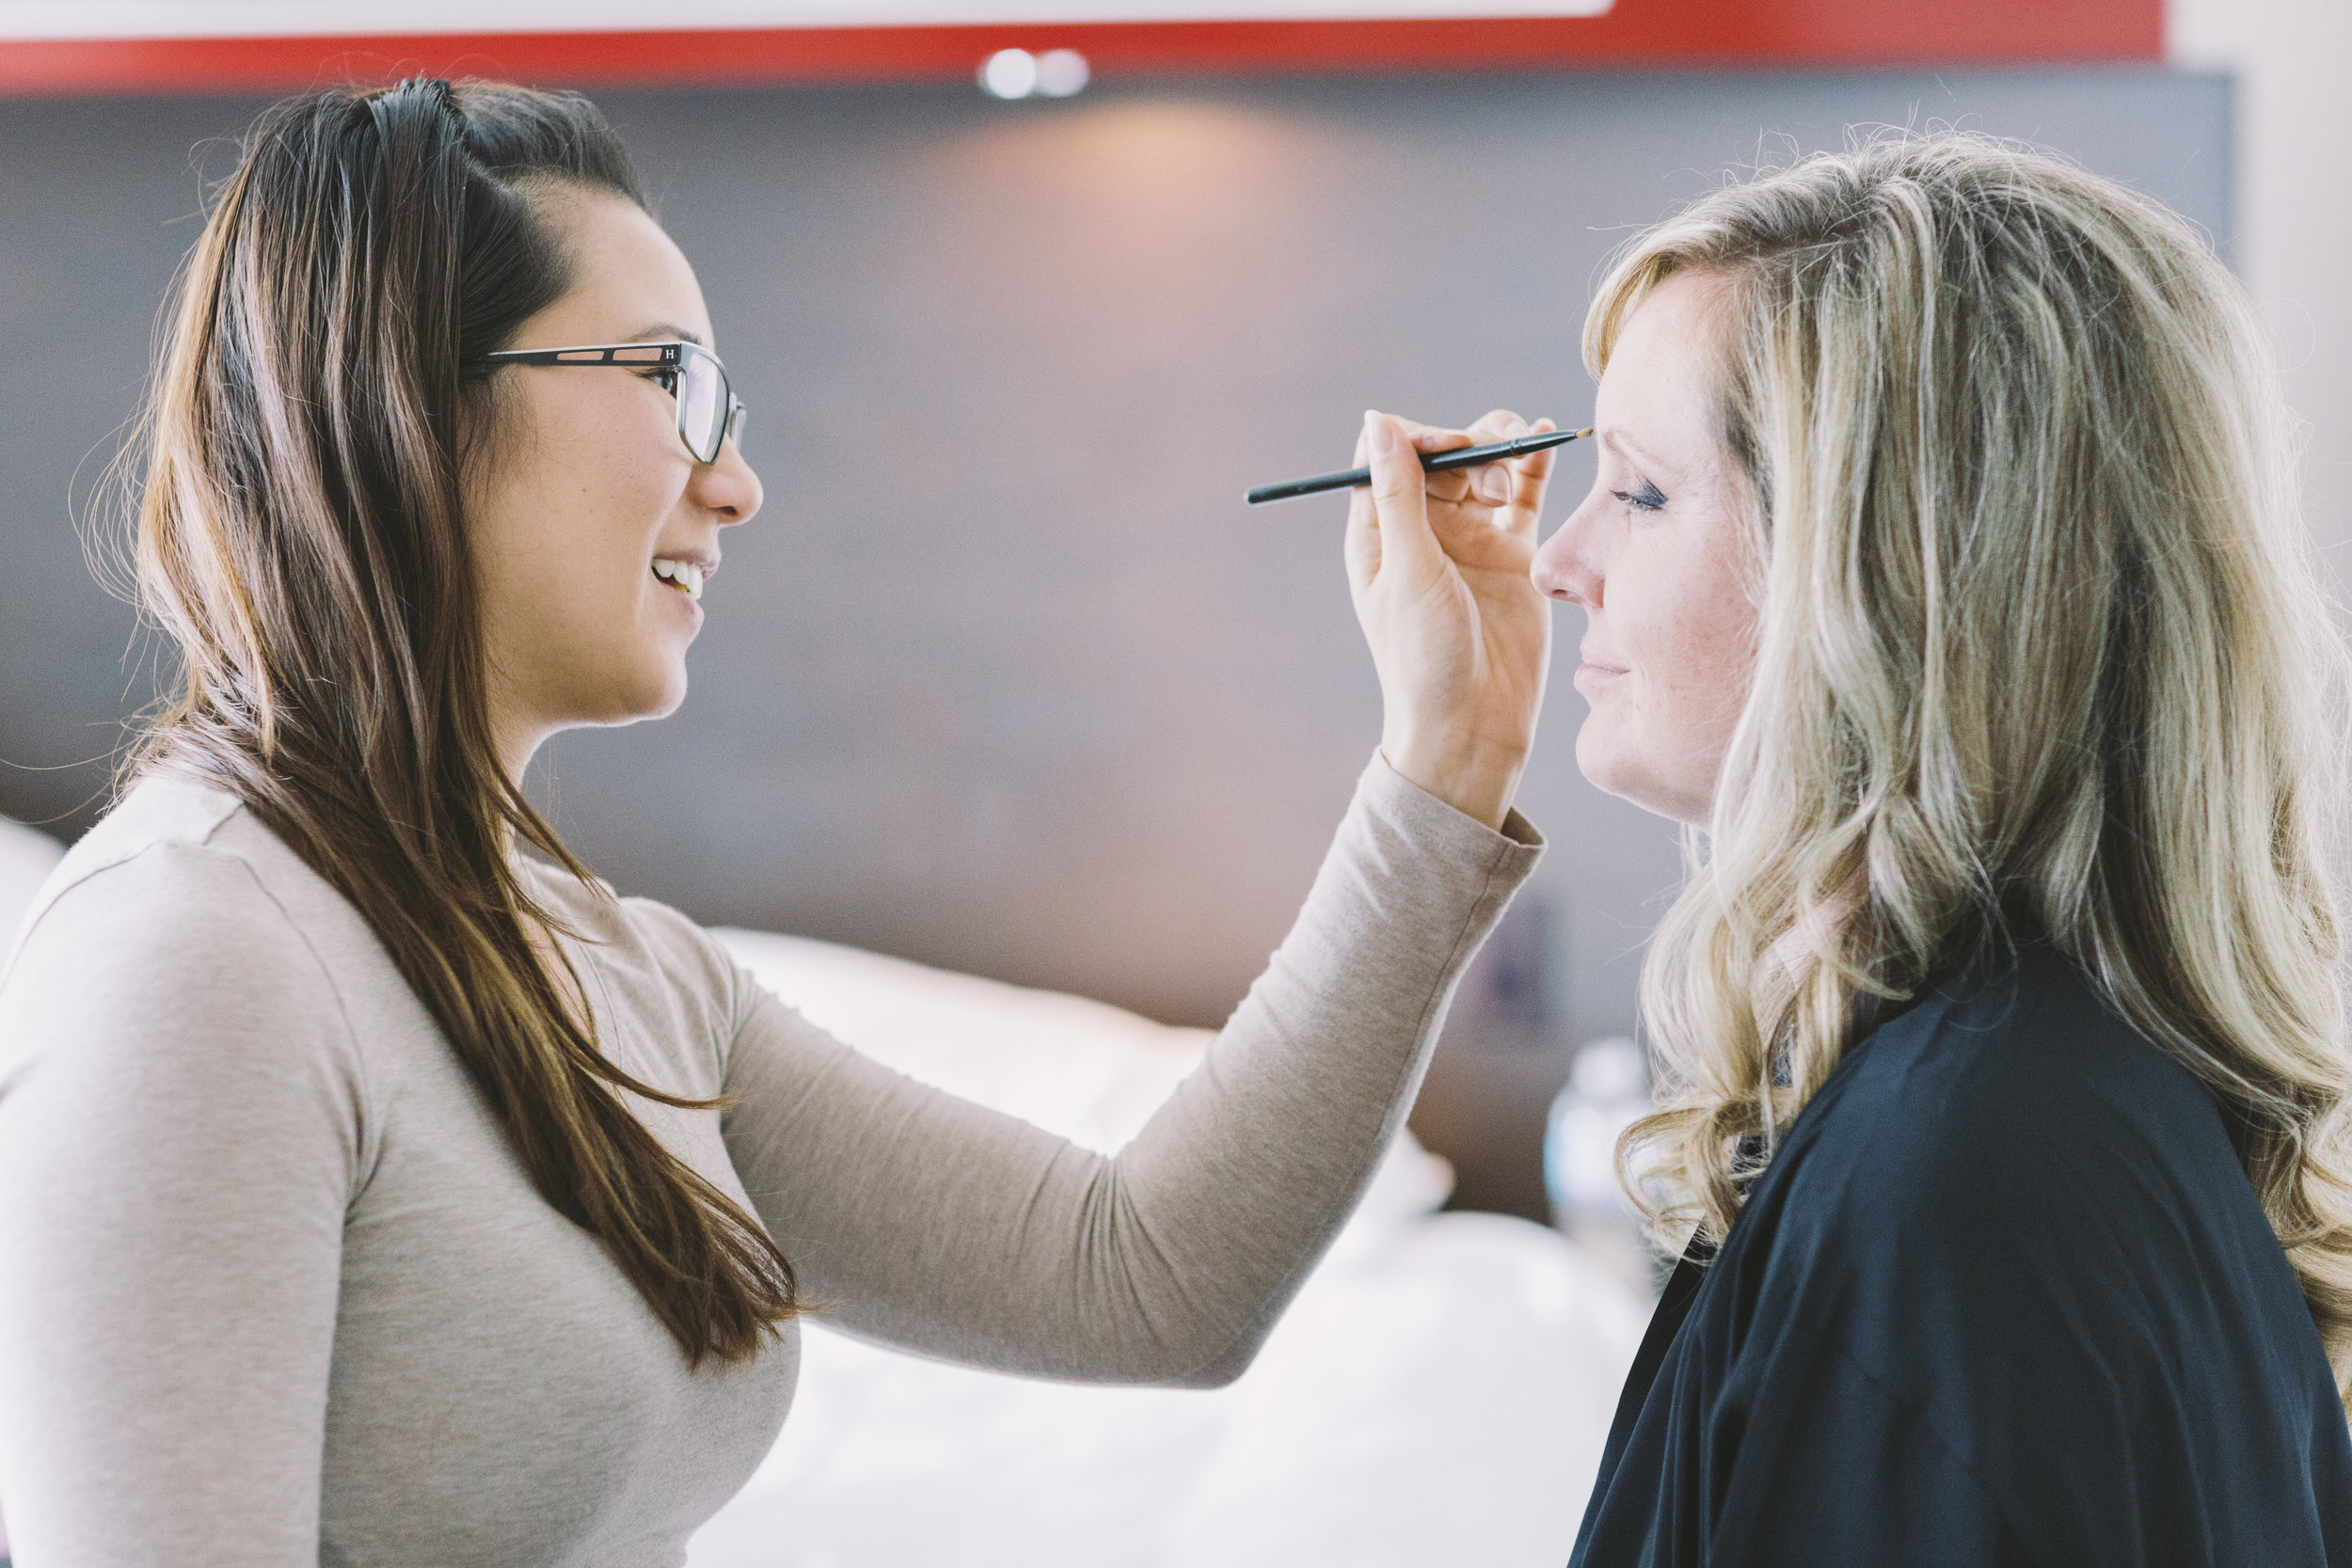 bridesmaid getting her wedding make-up done